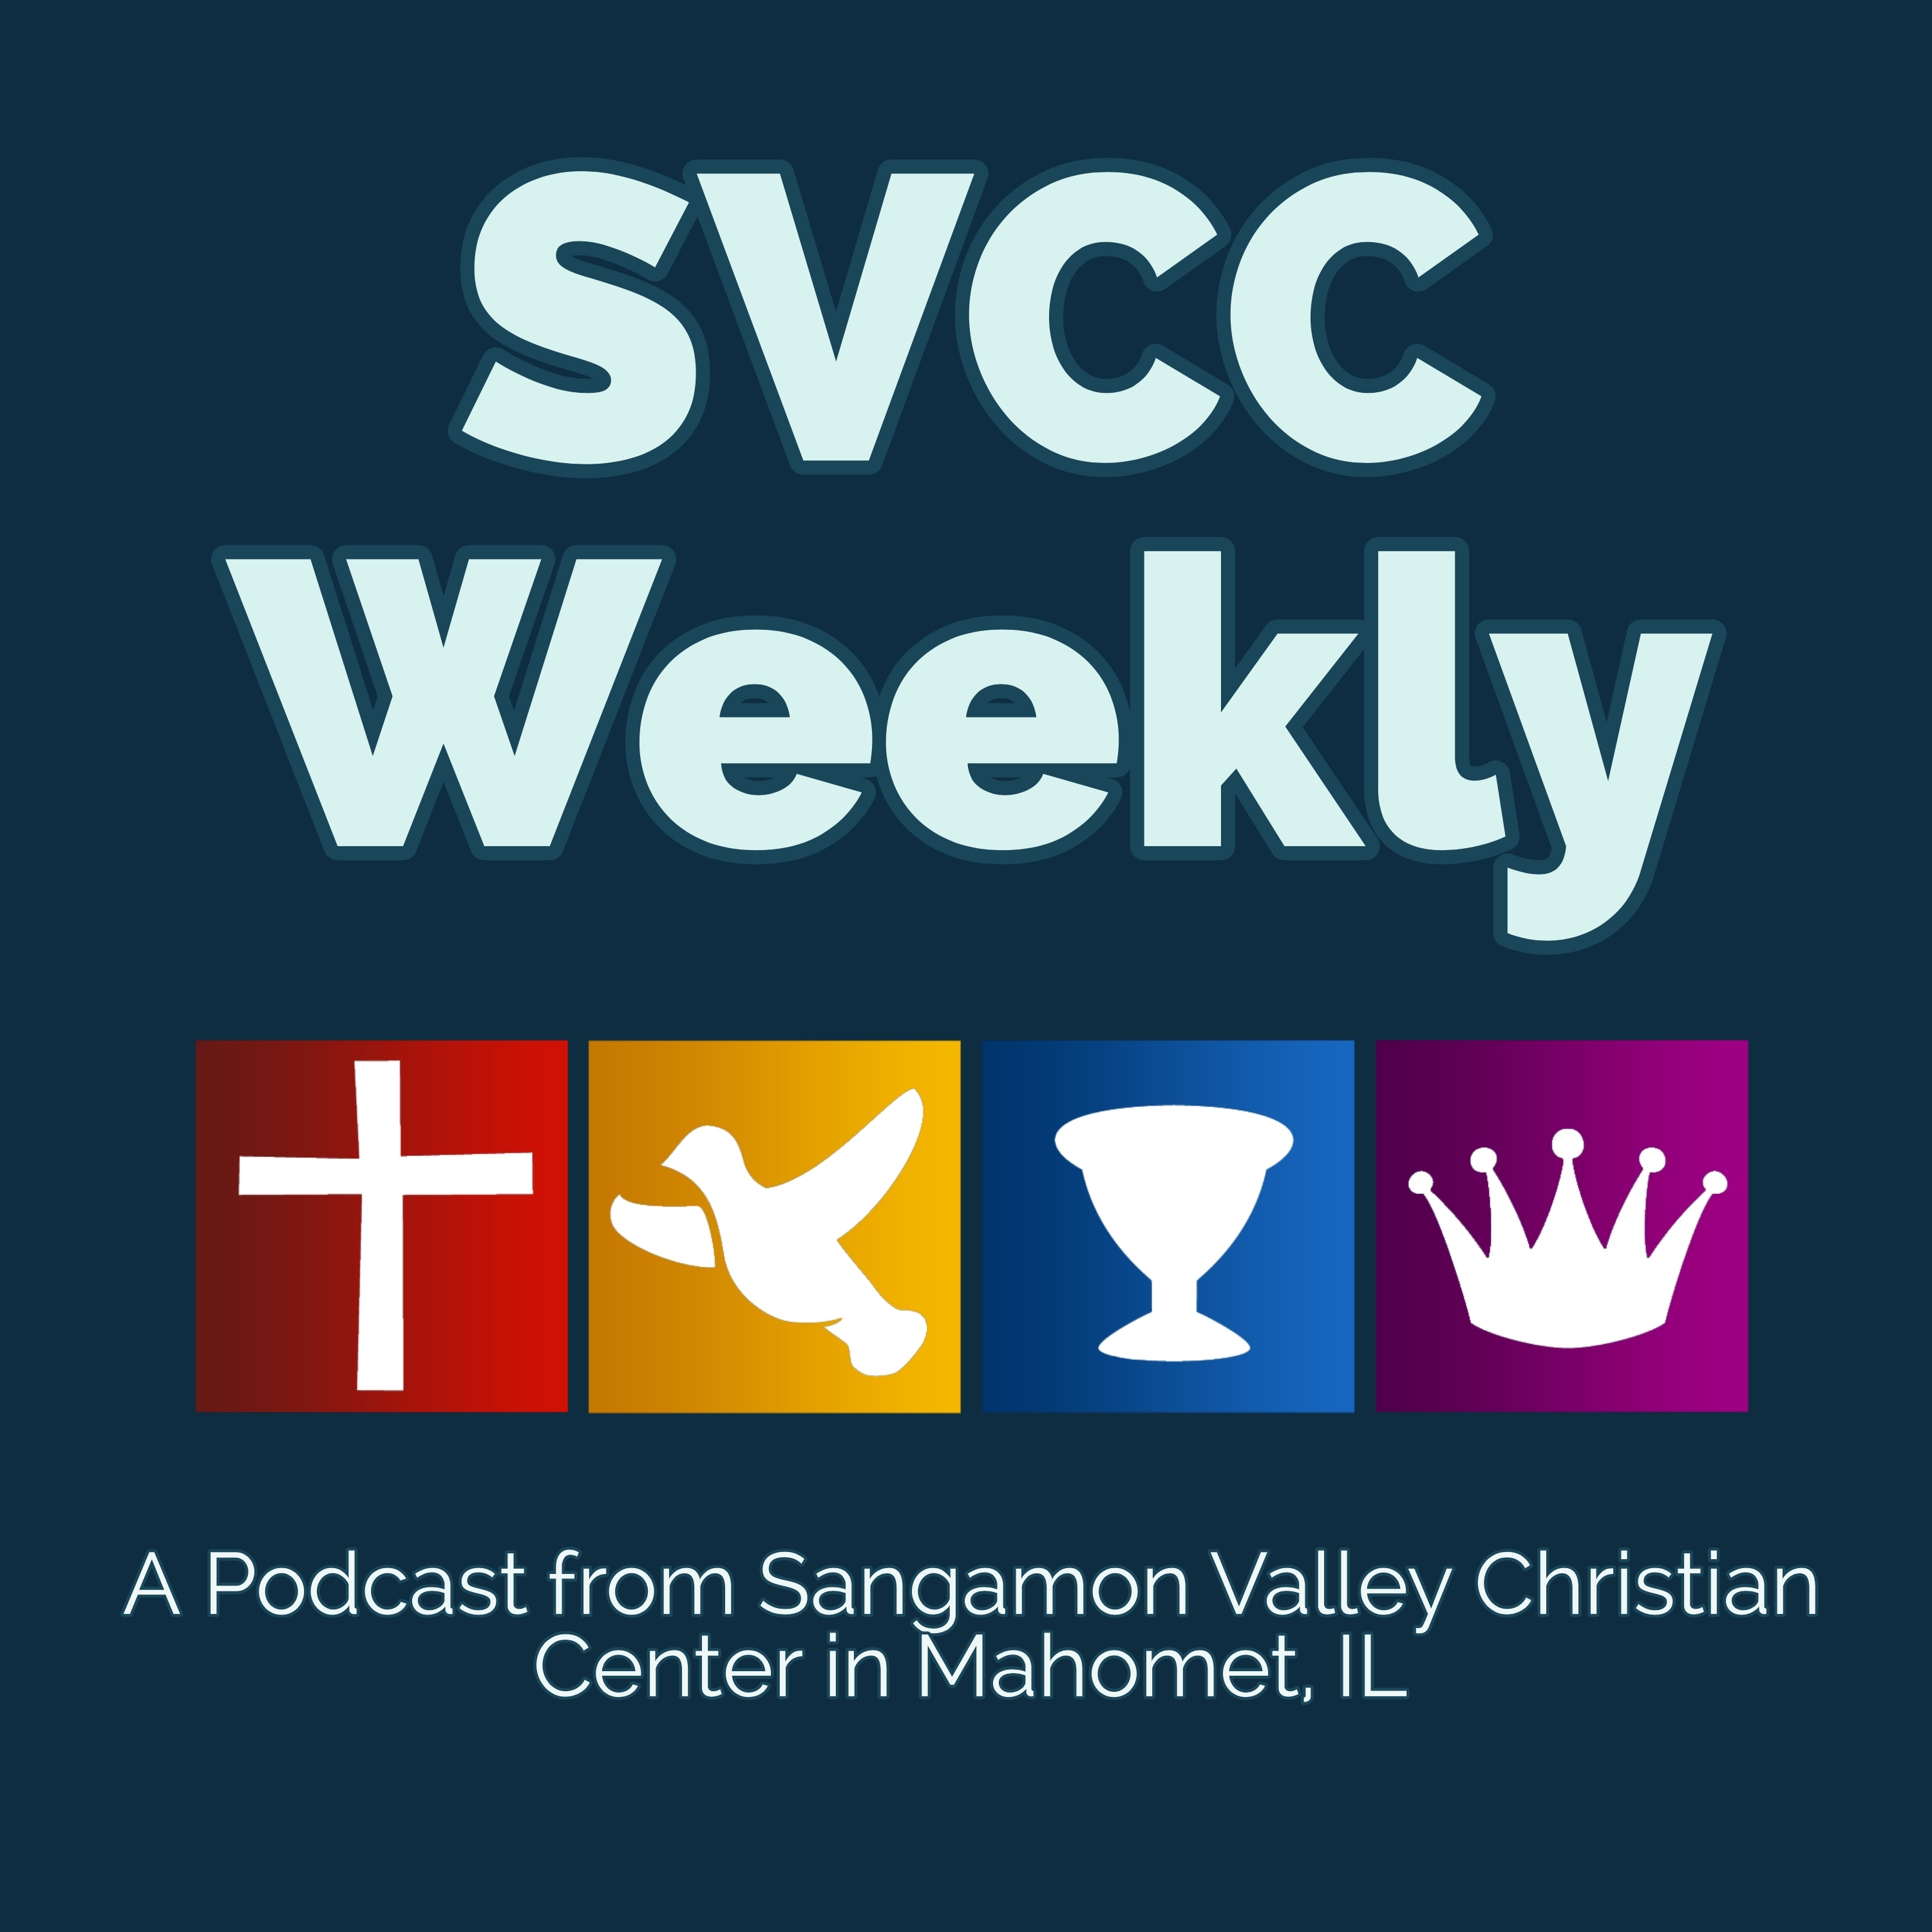 SVCC Weekly